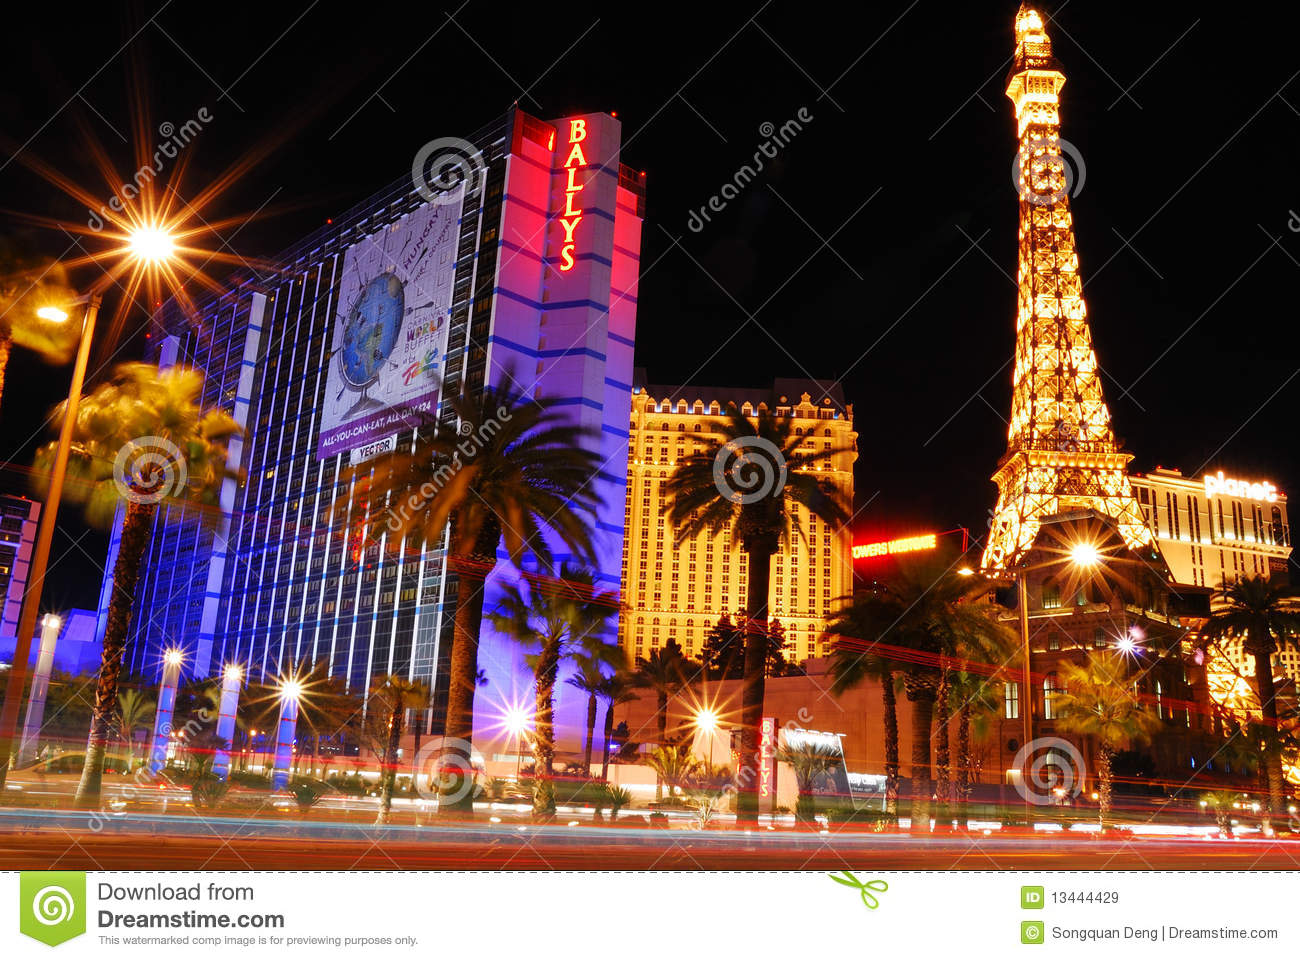 Las Vegas By Night Las Vegas De Noche As Vegas Pola: Las Vegas Street Night Scene. Editorial Stock Image